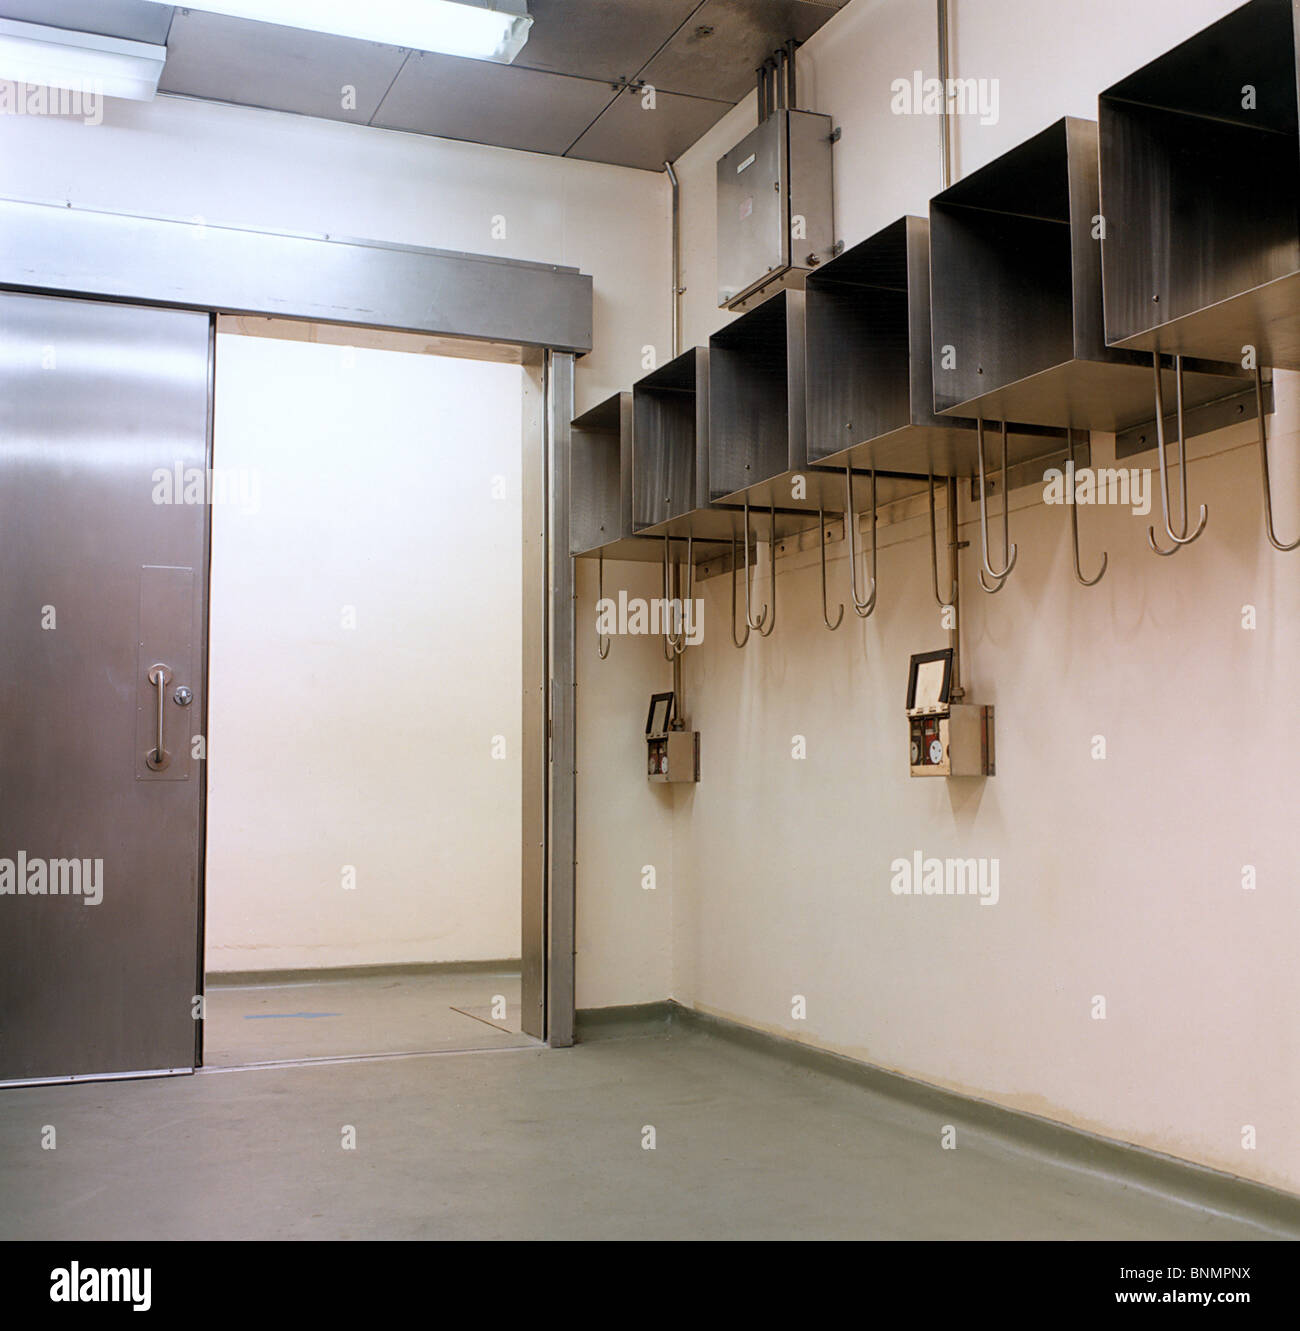 Interior of Nuclear Decontamination Suite at RAF Greenham Common which used to house 96 USAF Nuclear Missiles - Stock Image